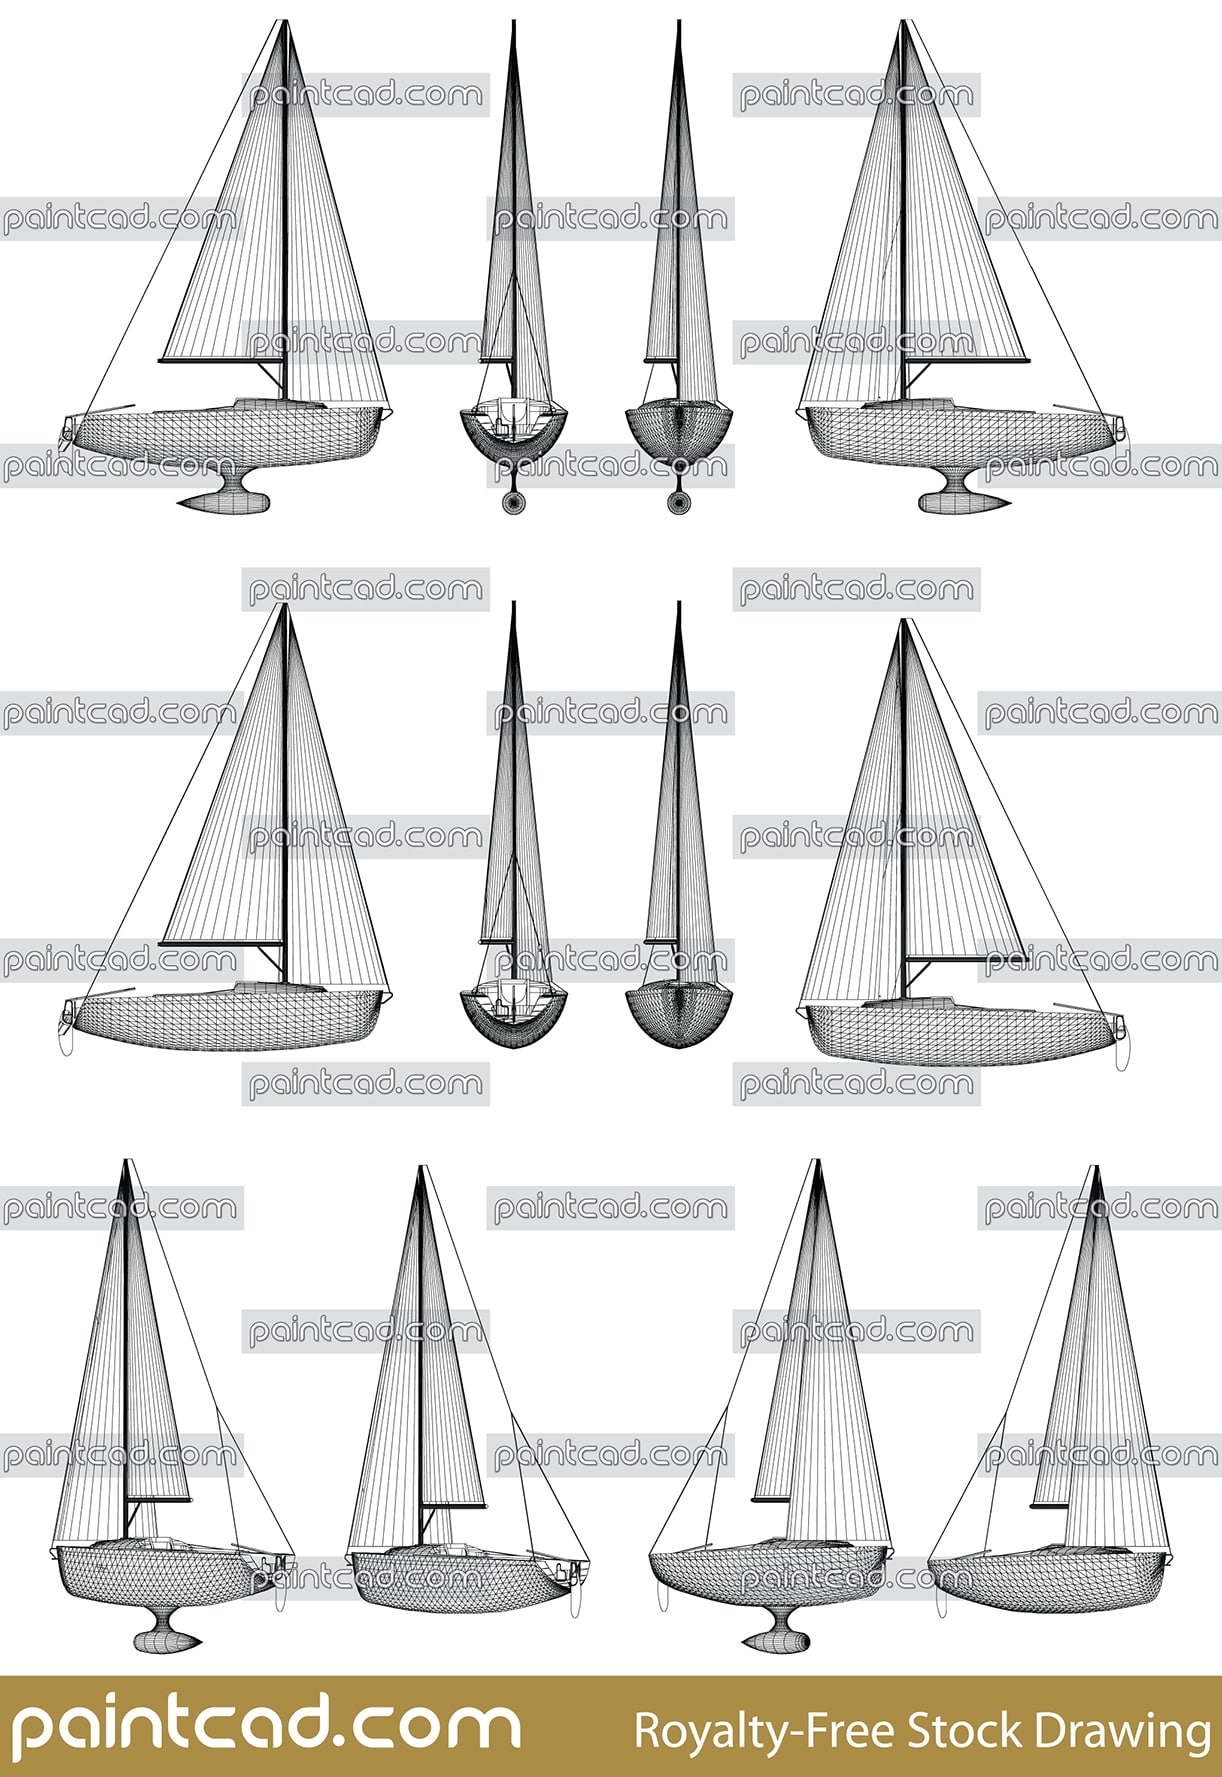 Wireframe vector design of motor boat with keel and sails - vector illustration